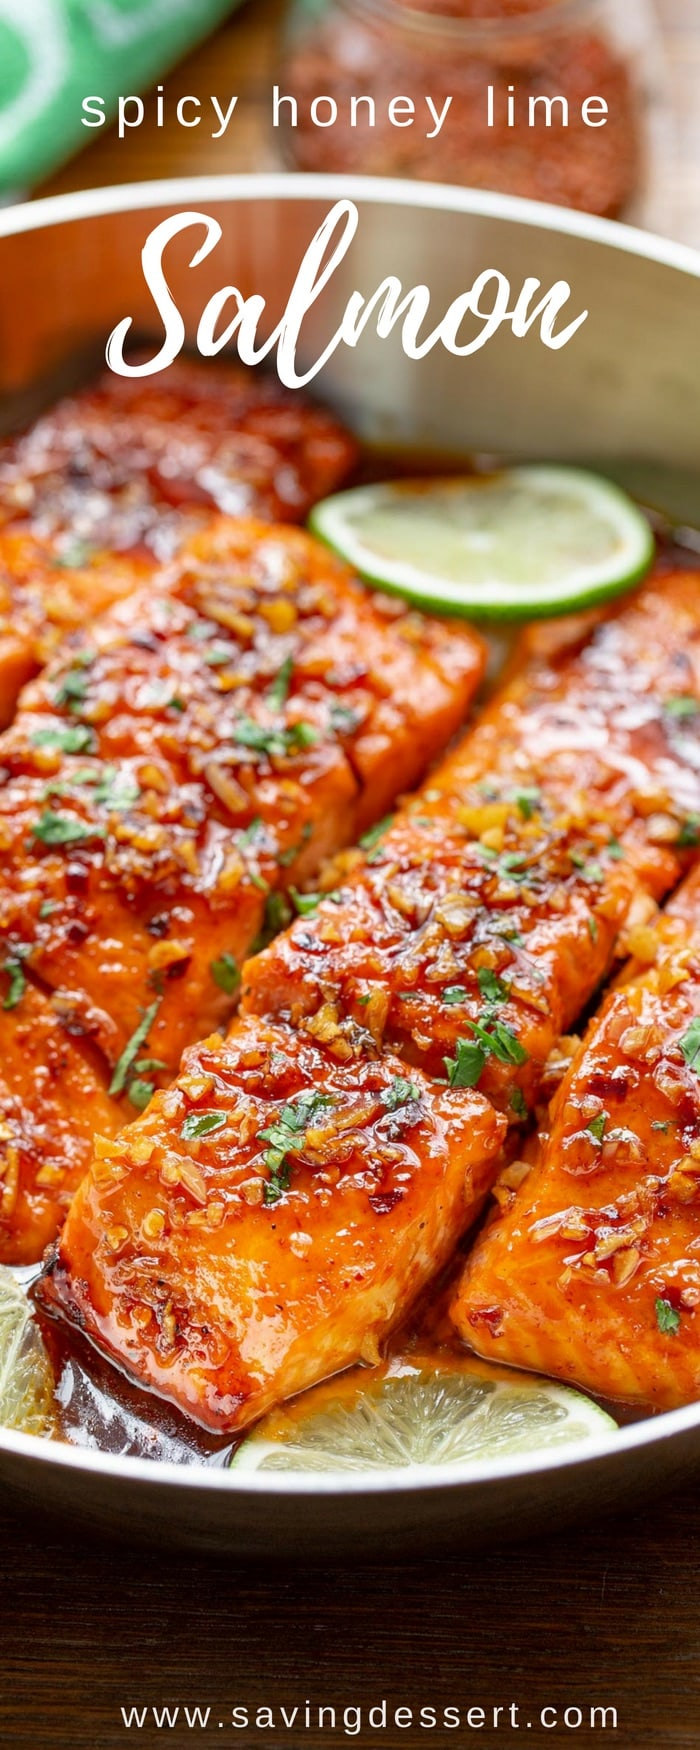 Spicy Honey Glazed Salmon Recipe - easy and quick, this flavorful salmon is seasoned with a spicy dry sriracha blend then sautéed in a honey-lime garlic sauce. #savingroomfordessert #salmon #spicy #easydinner #honeyglazedsalmon #salmondinner #seafood #fish